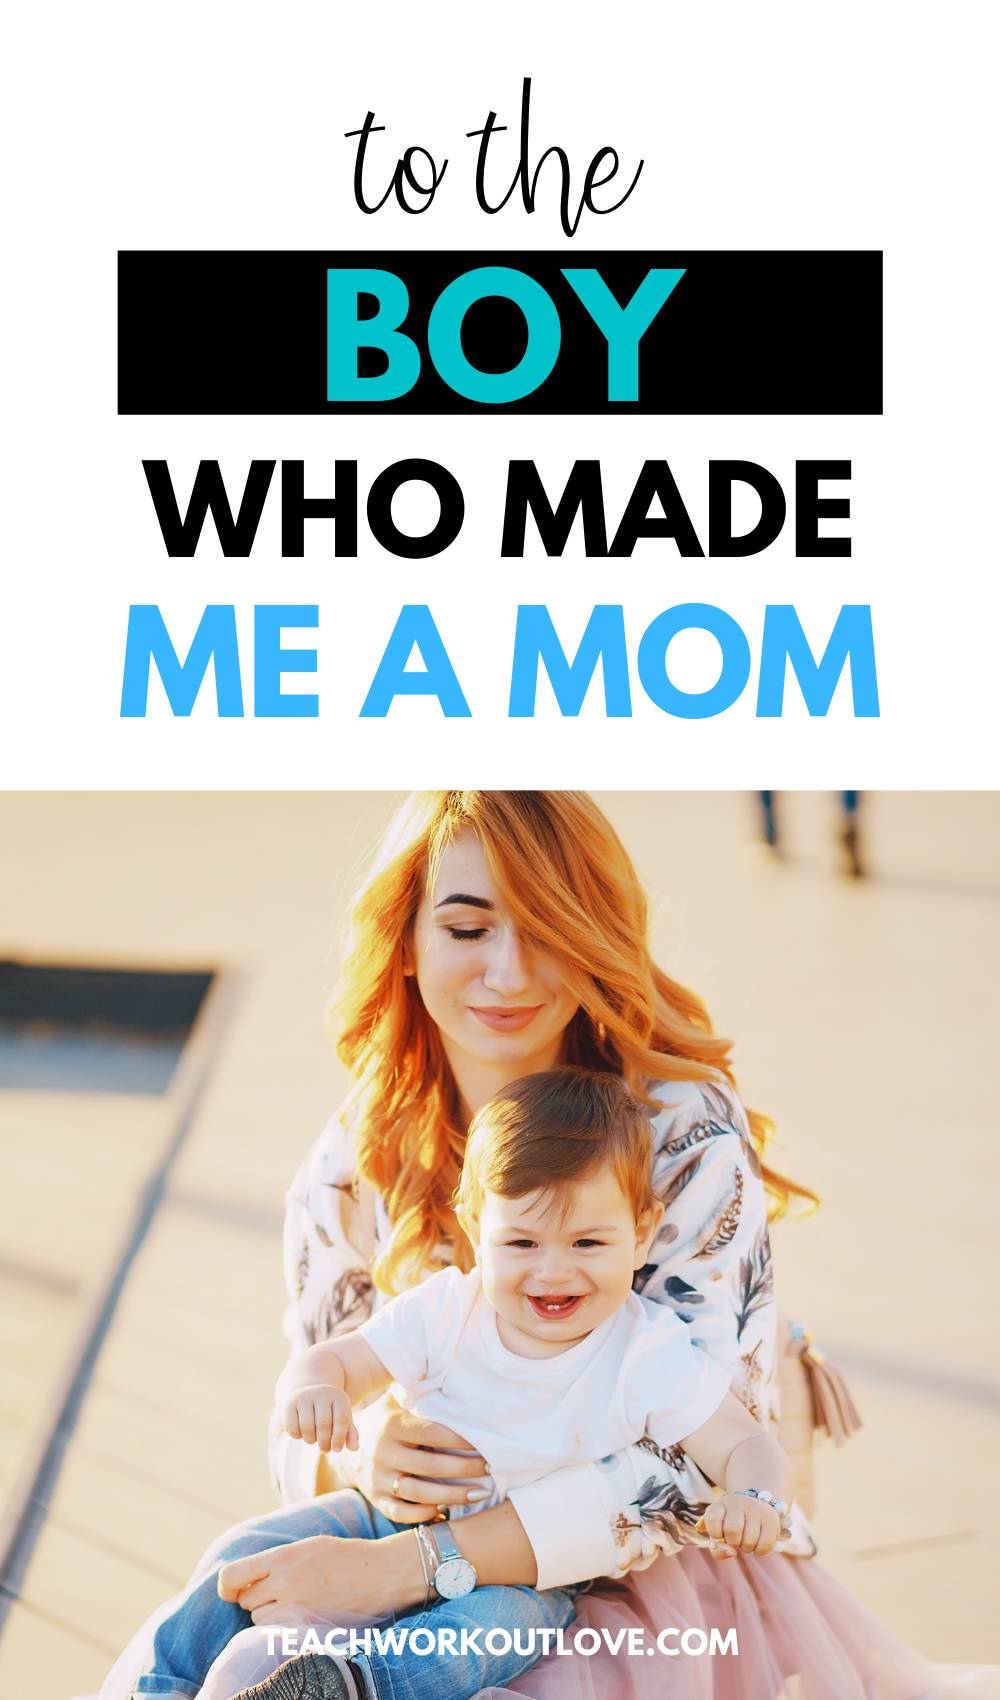 To The Boy Who Made Me A Mom - A Love Letter to my Son. A letter from a mother to her son, sharing the detailed love for her son.